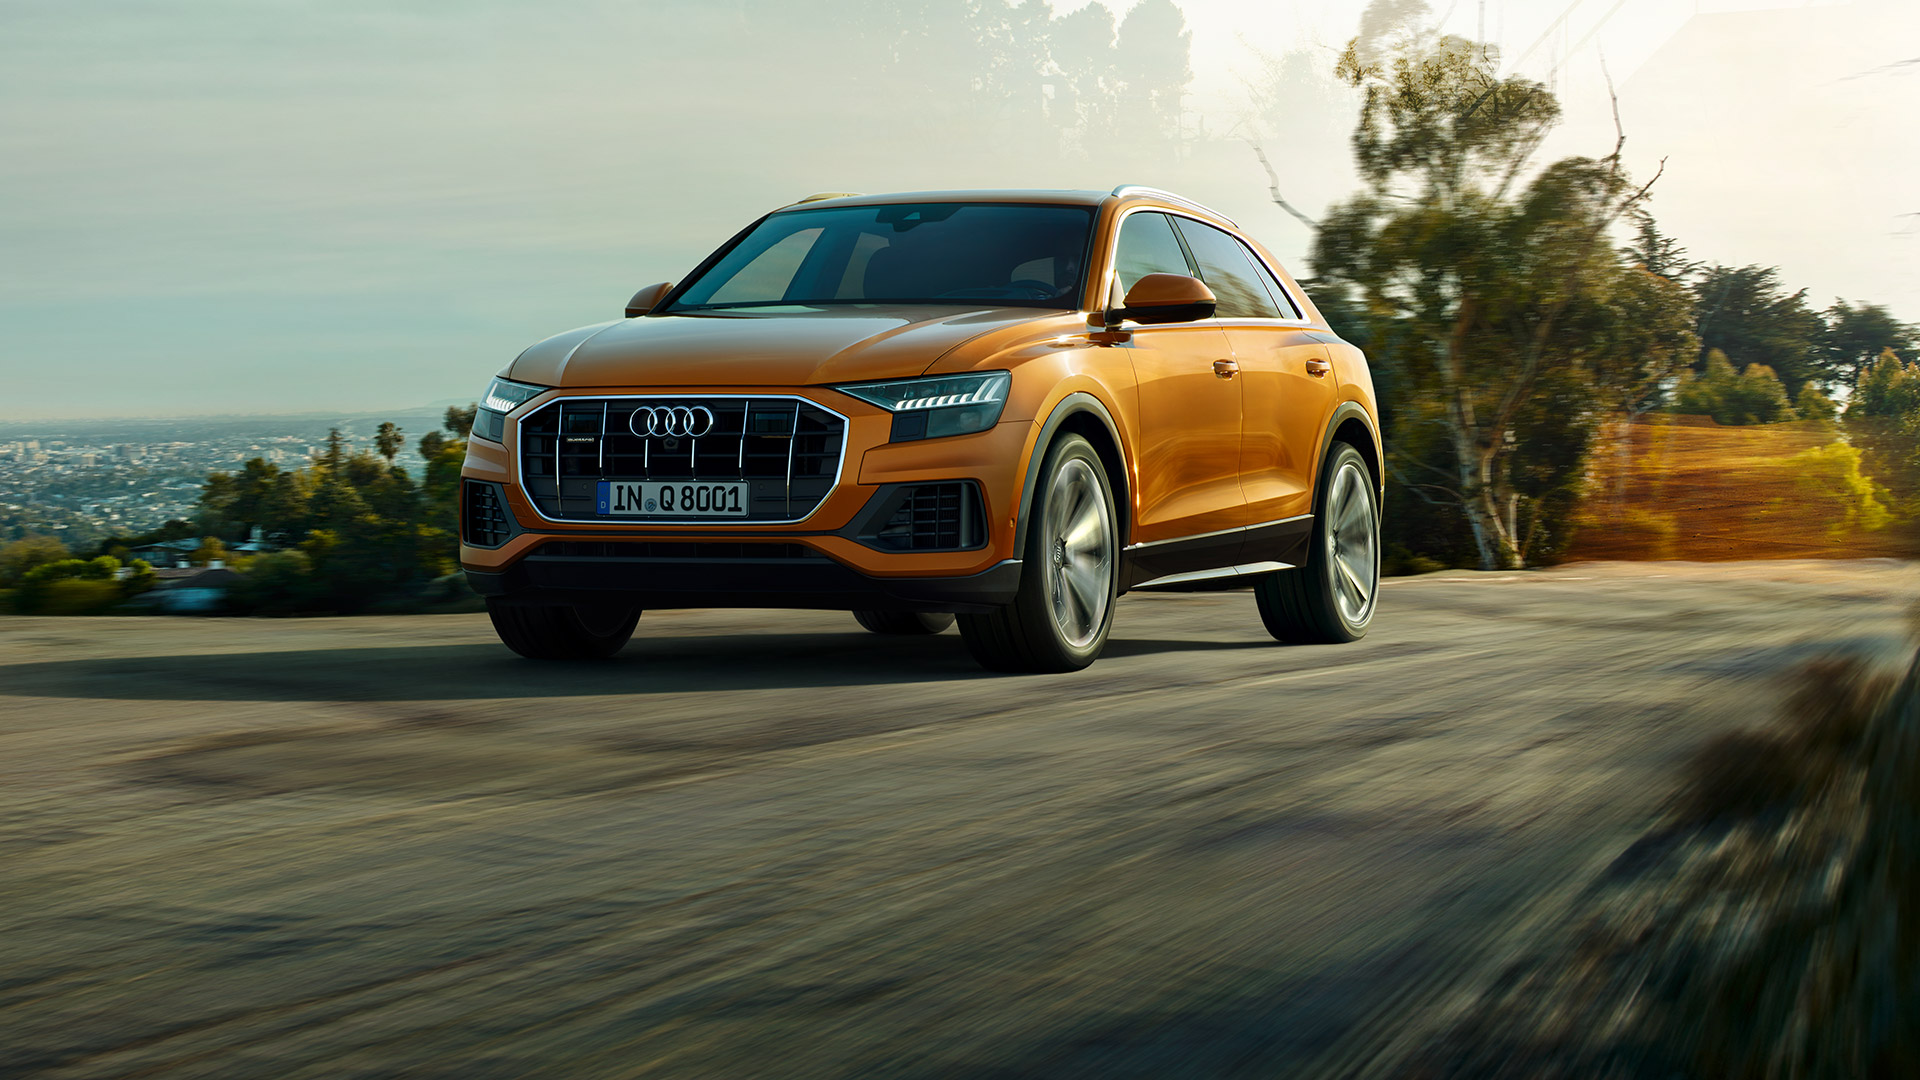 Performance of the 2019 Audi Q8